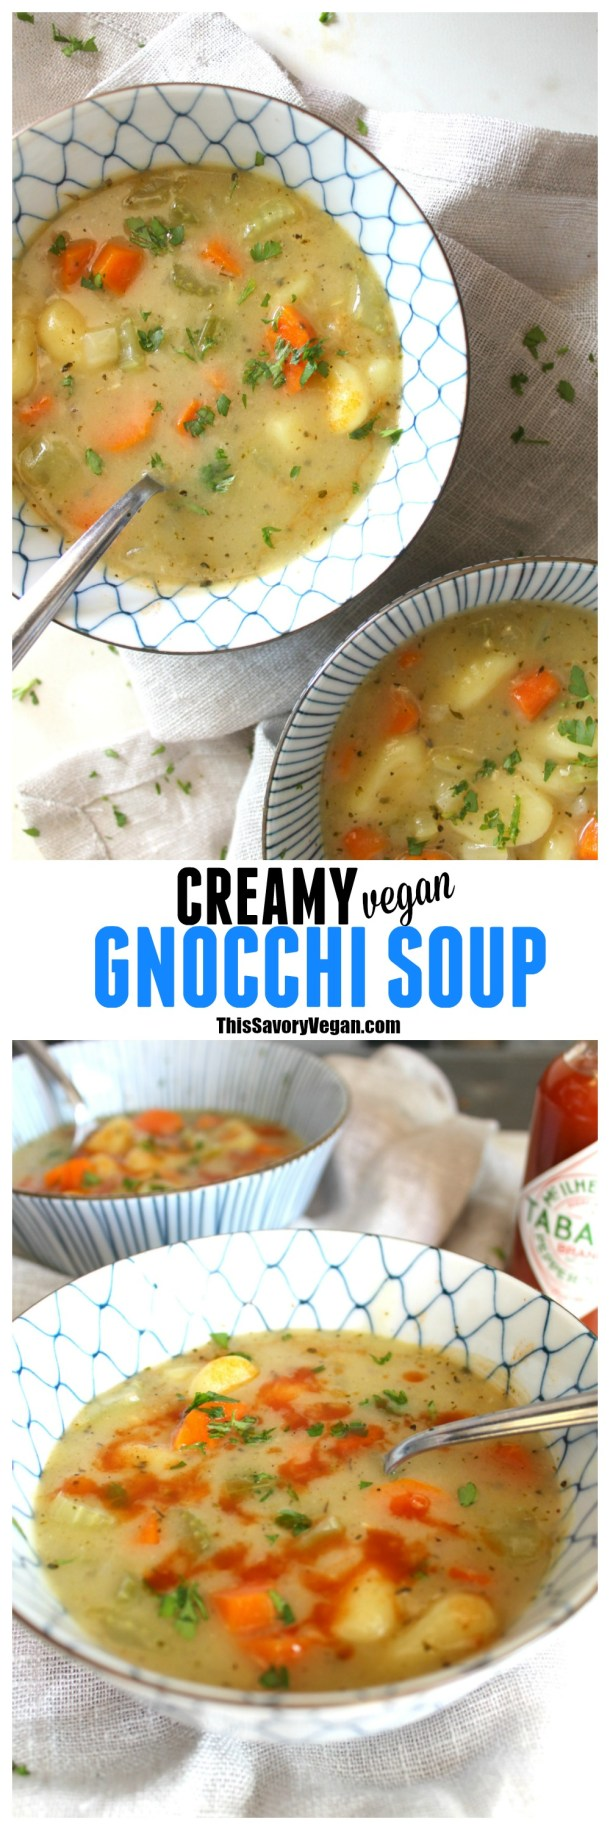 This Creamy Vegan Gnocchi Soup is an easy and comforting weeknight meal | ThisSavoryVegan.com